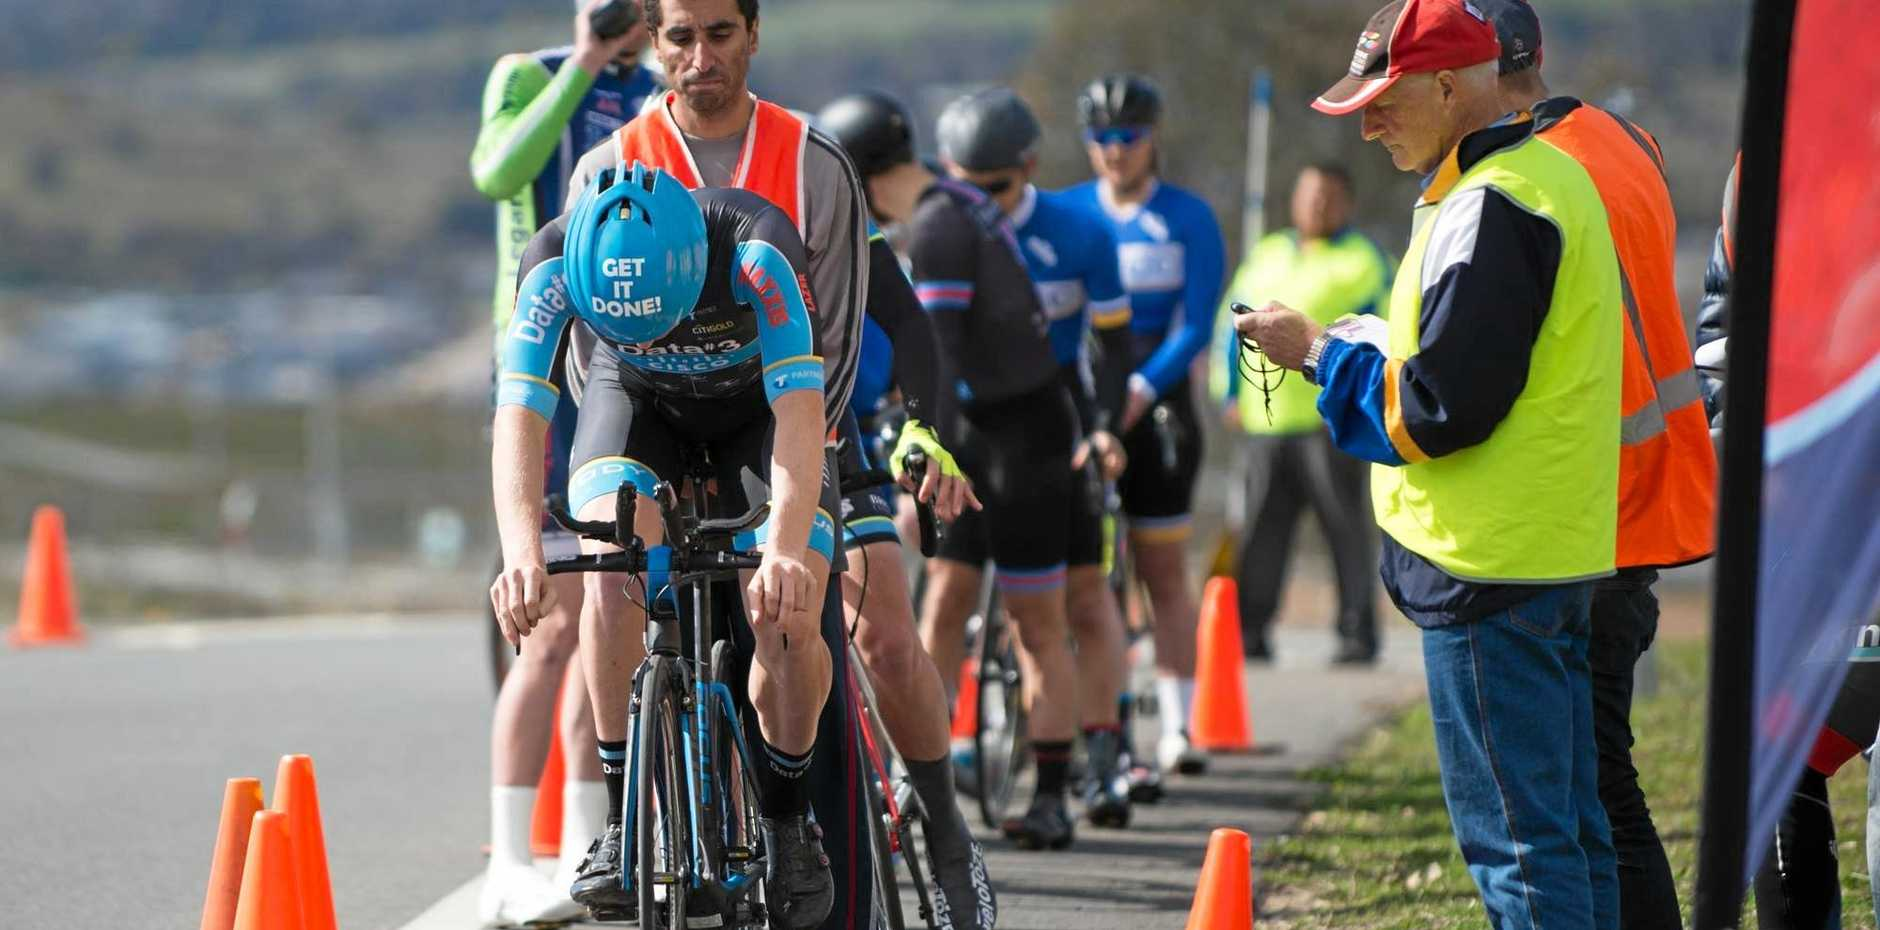 THAT HE DID: Craig Evers bows his head to display his 'Get It Done' motto at the starter's gate of the ACT ITT Championships.